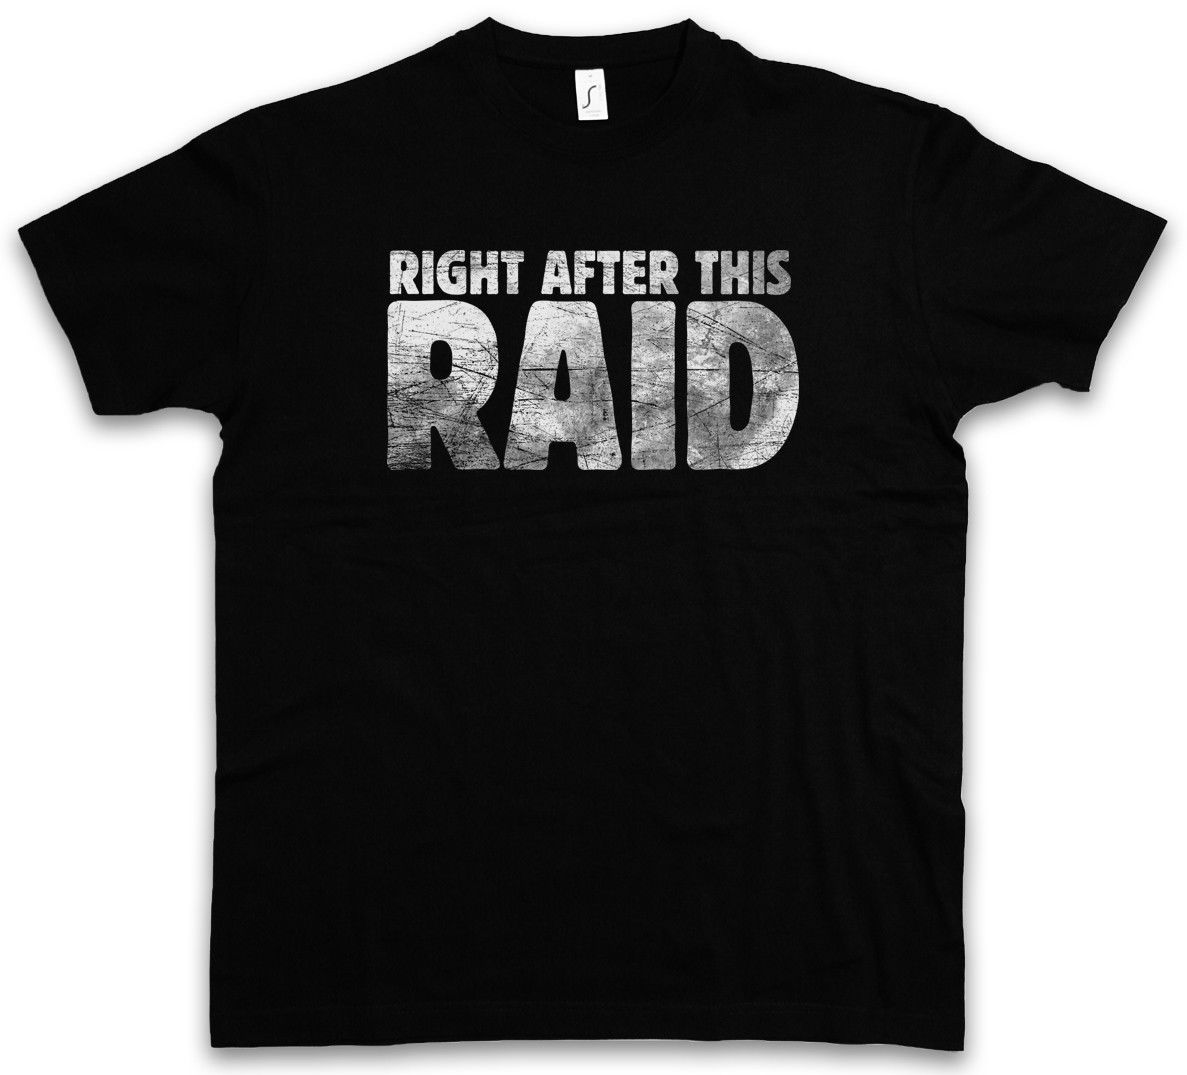 Right After This Raid T-Shirt Gamer Games Gaming Video RPG Online MMORPG Fun Hip Hop Clothing Cotton Short Sleeve T Shirt image